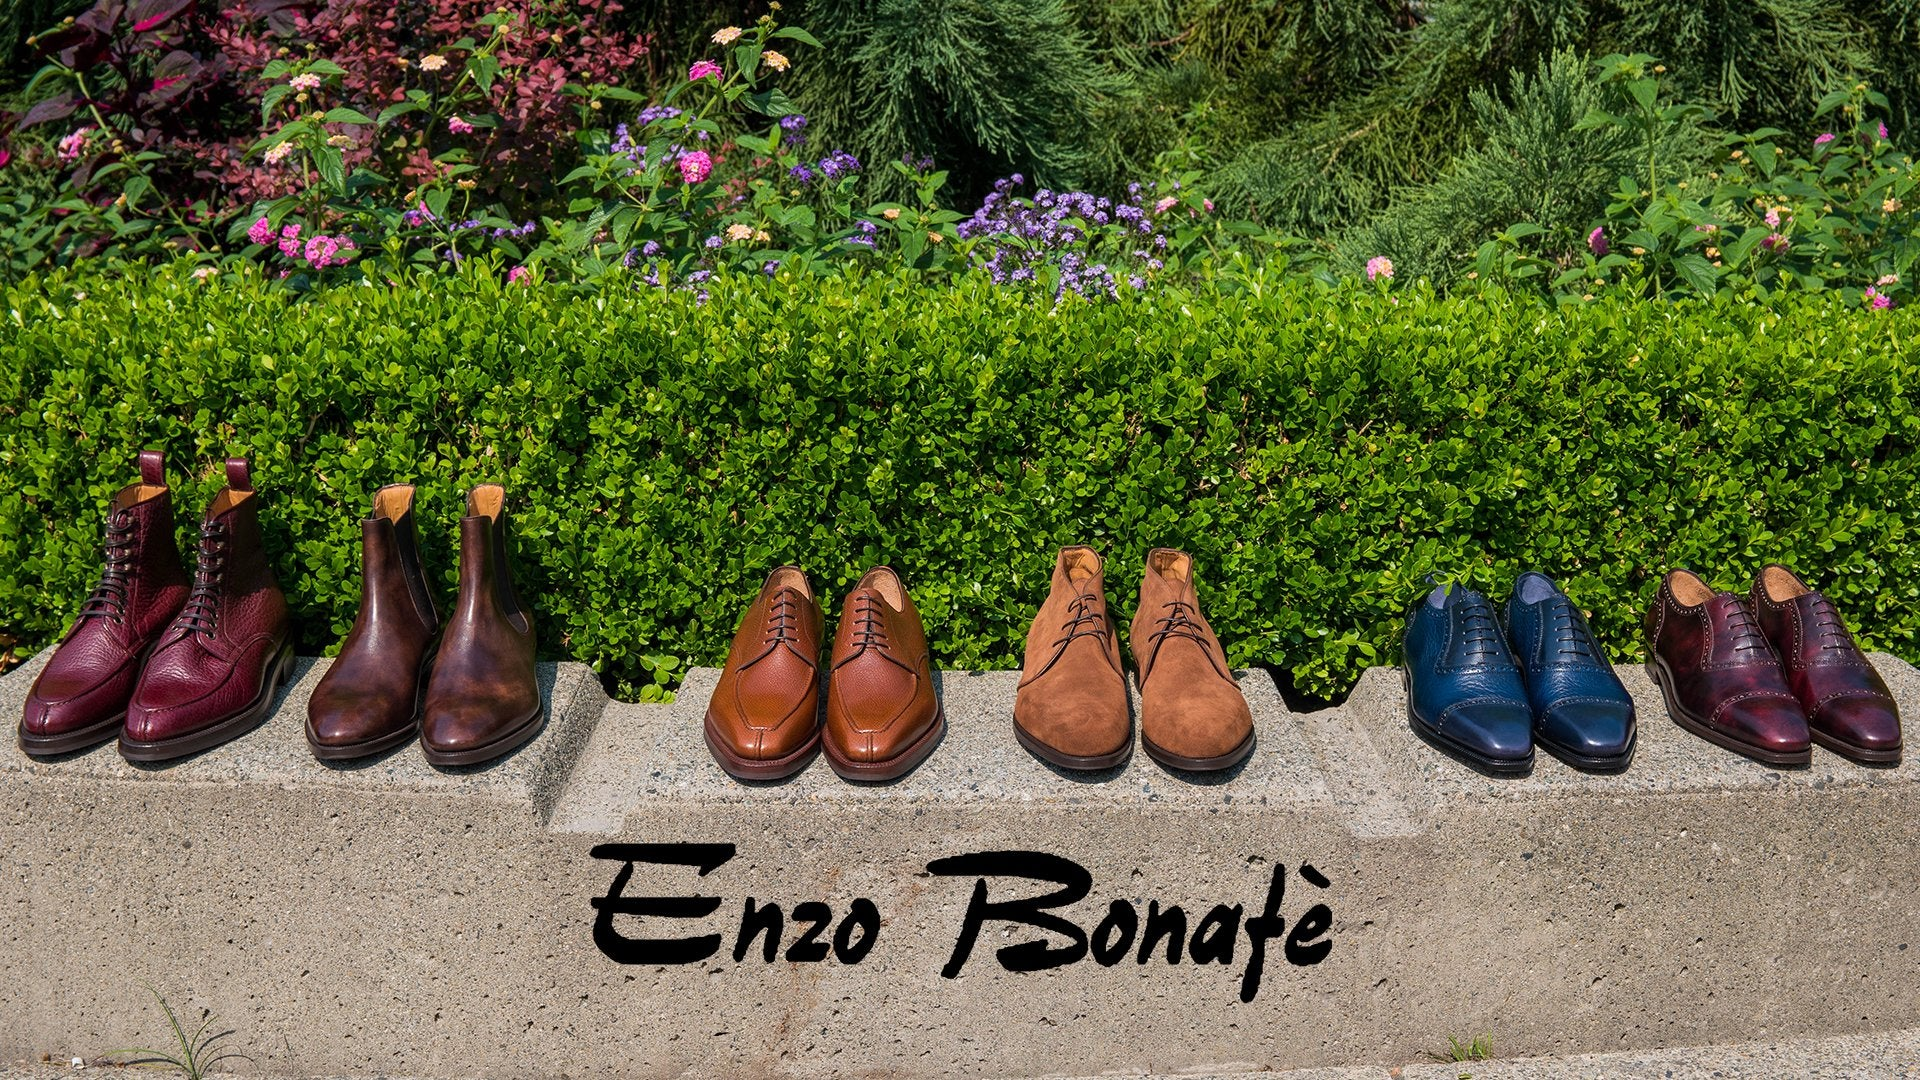 Enzo Bonafe Shoes